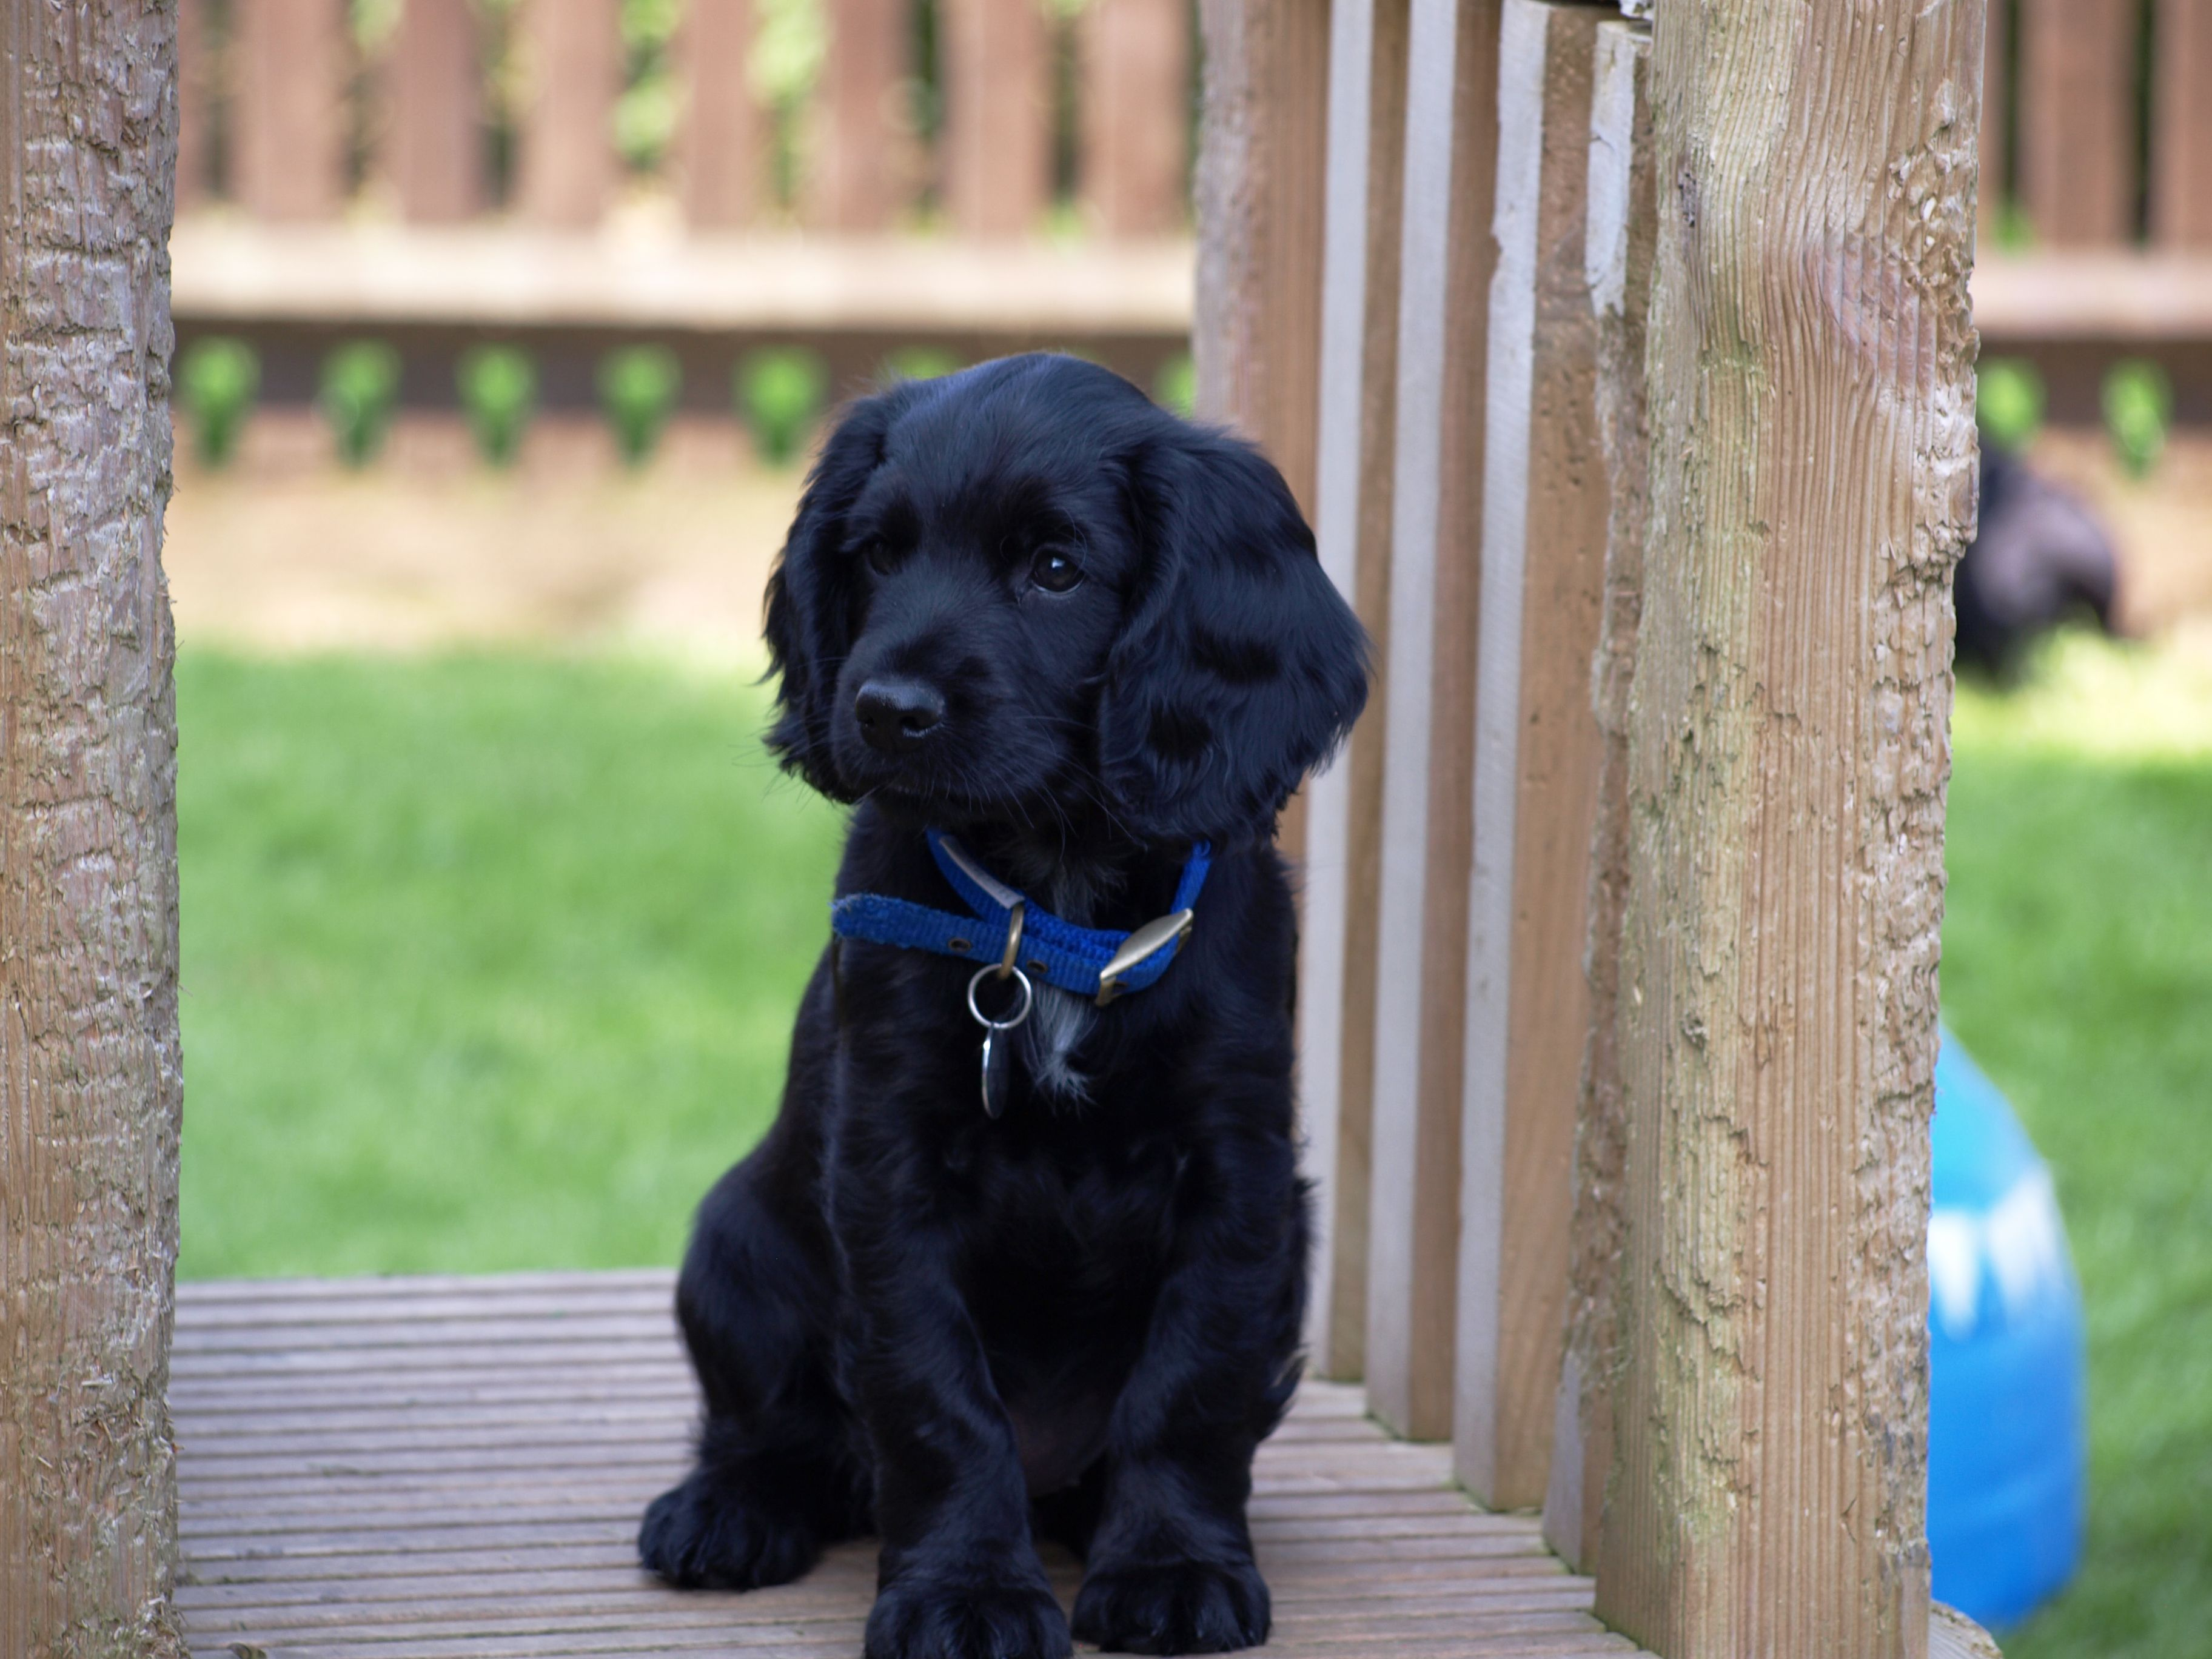 Are you the only organisation that trains hearing dogs? We